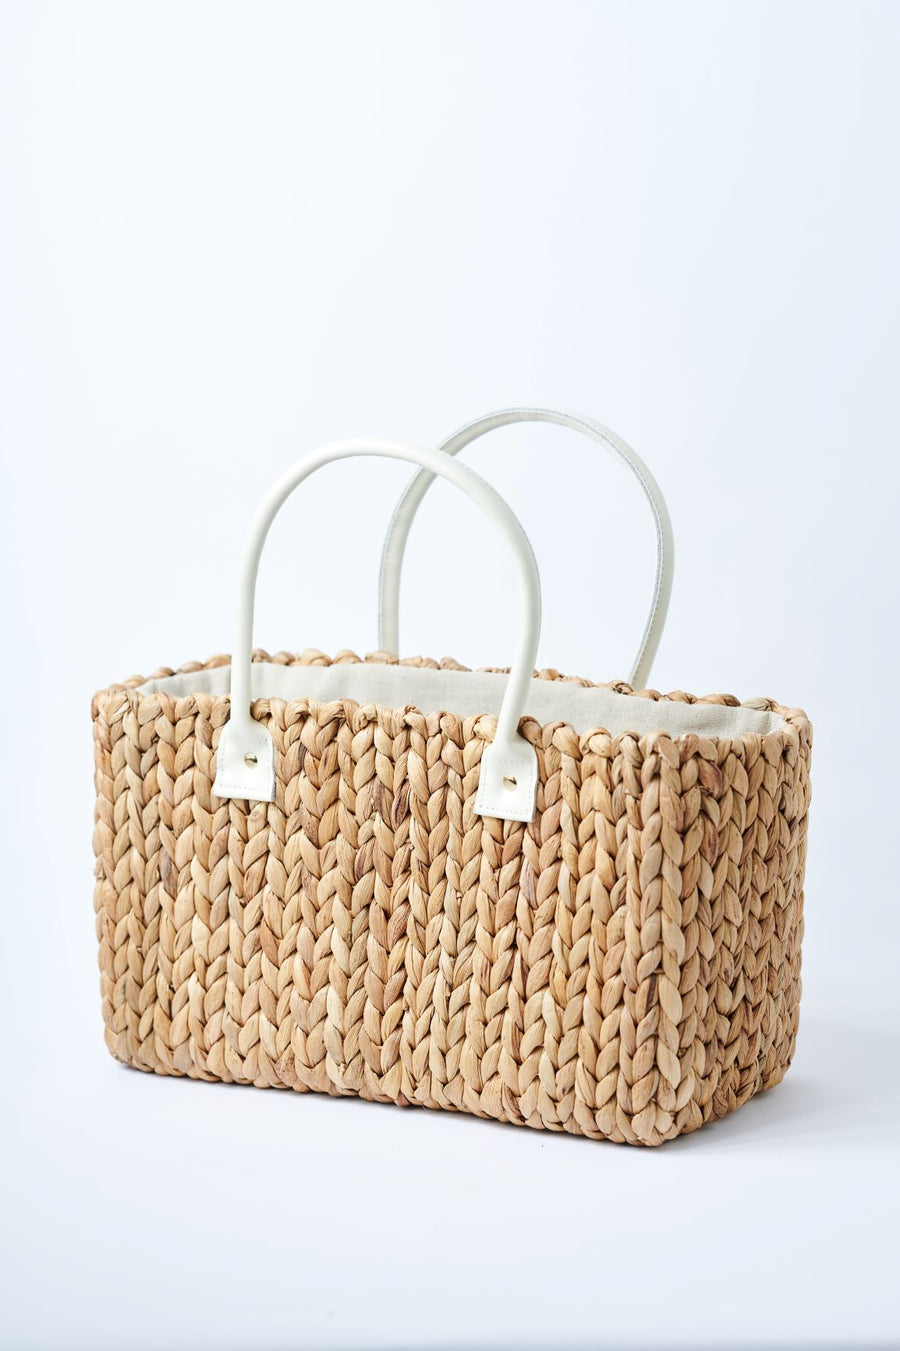 back view of medium natural hyacinth straw tote with linen cinch top